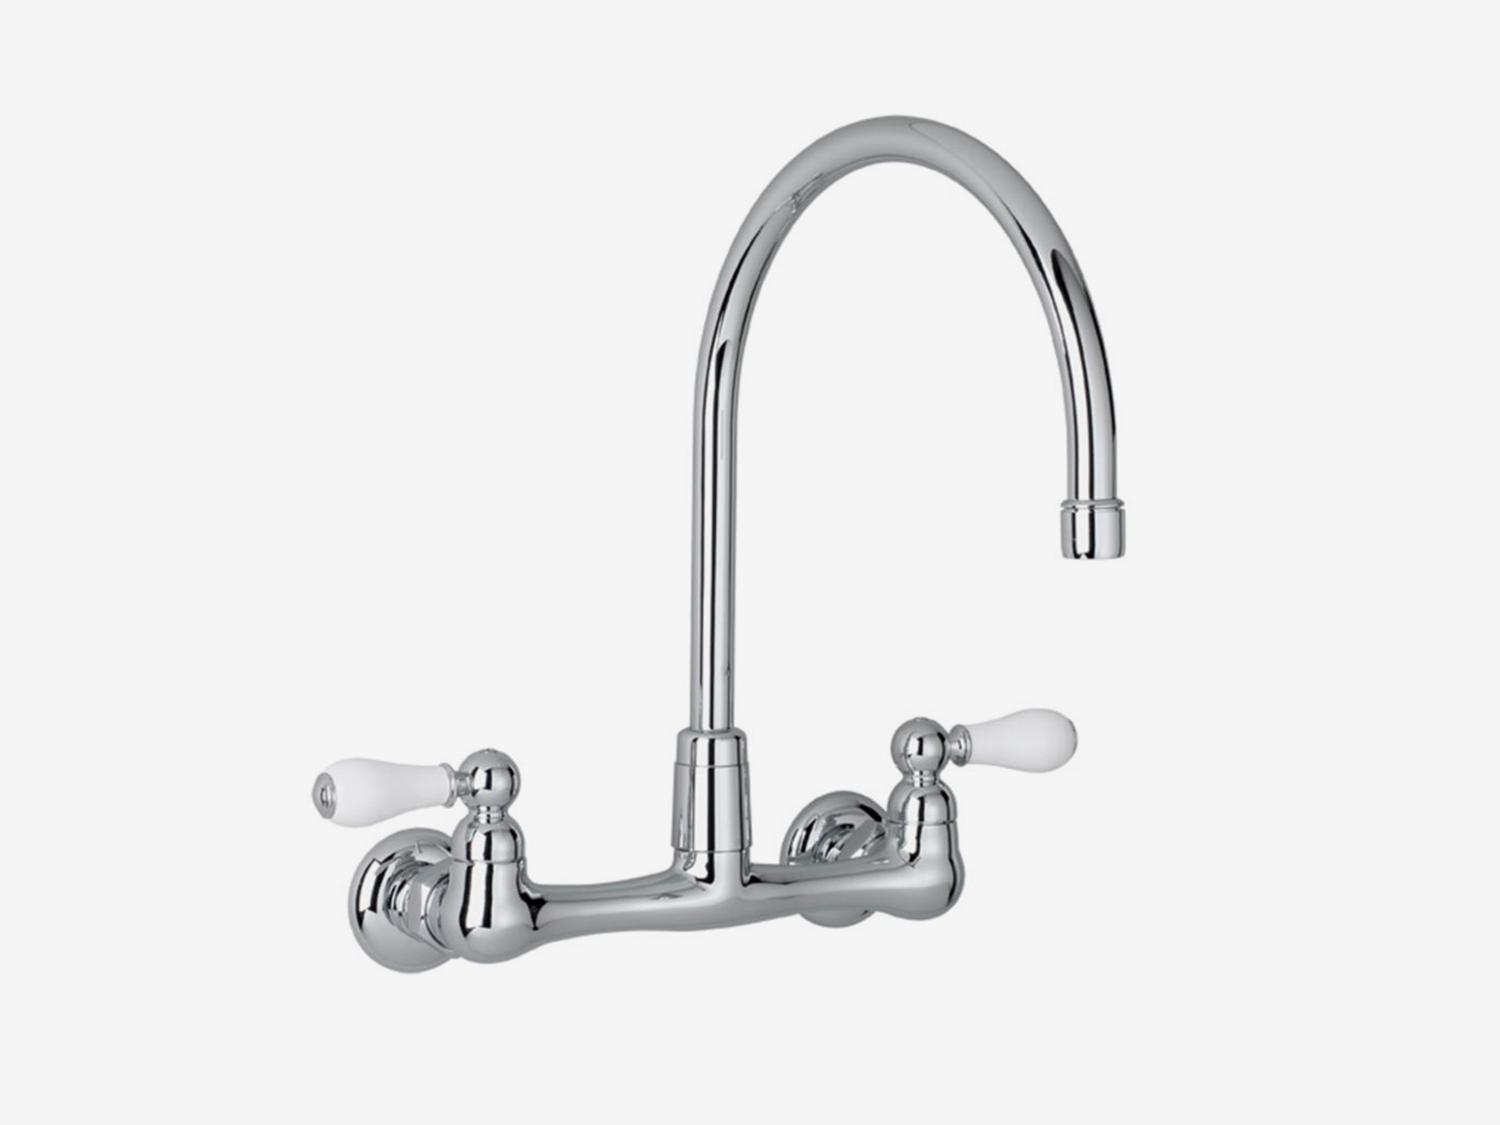 Home Depot Faucets | Kitchen Faucets | Moen Kitchen Faucet Dripping